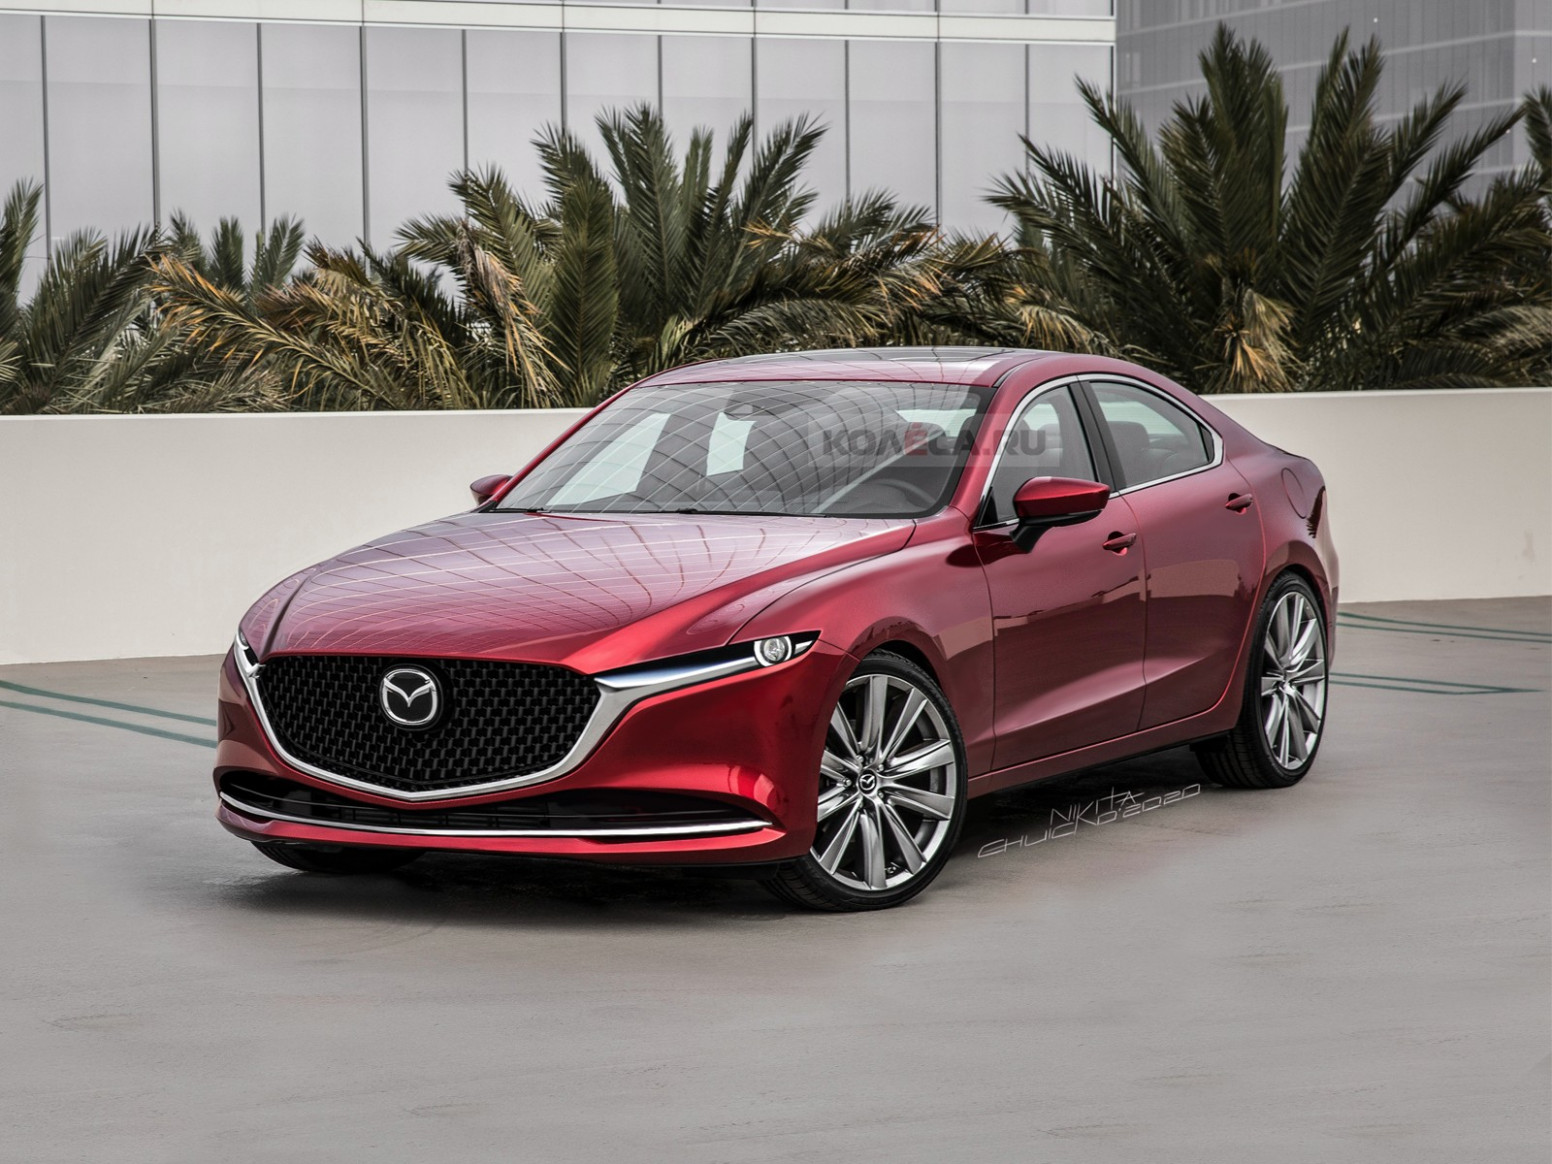 Redesign and Concept Mazda Sport 2022